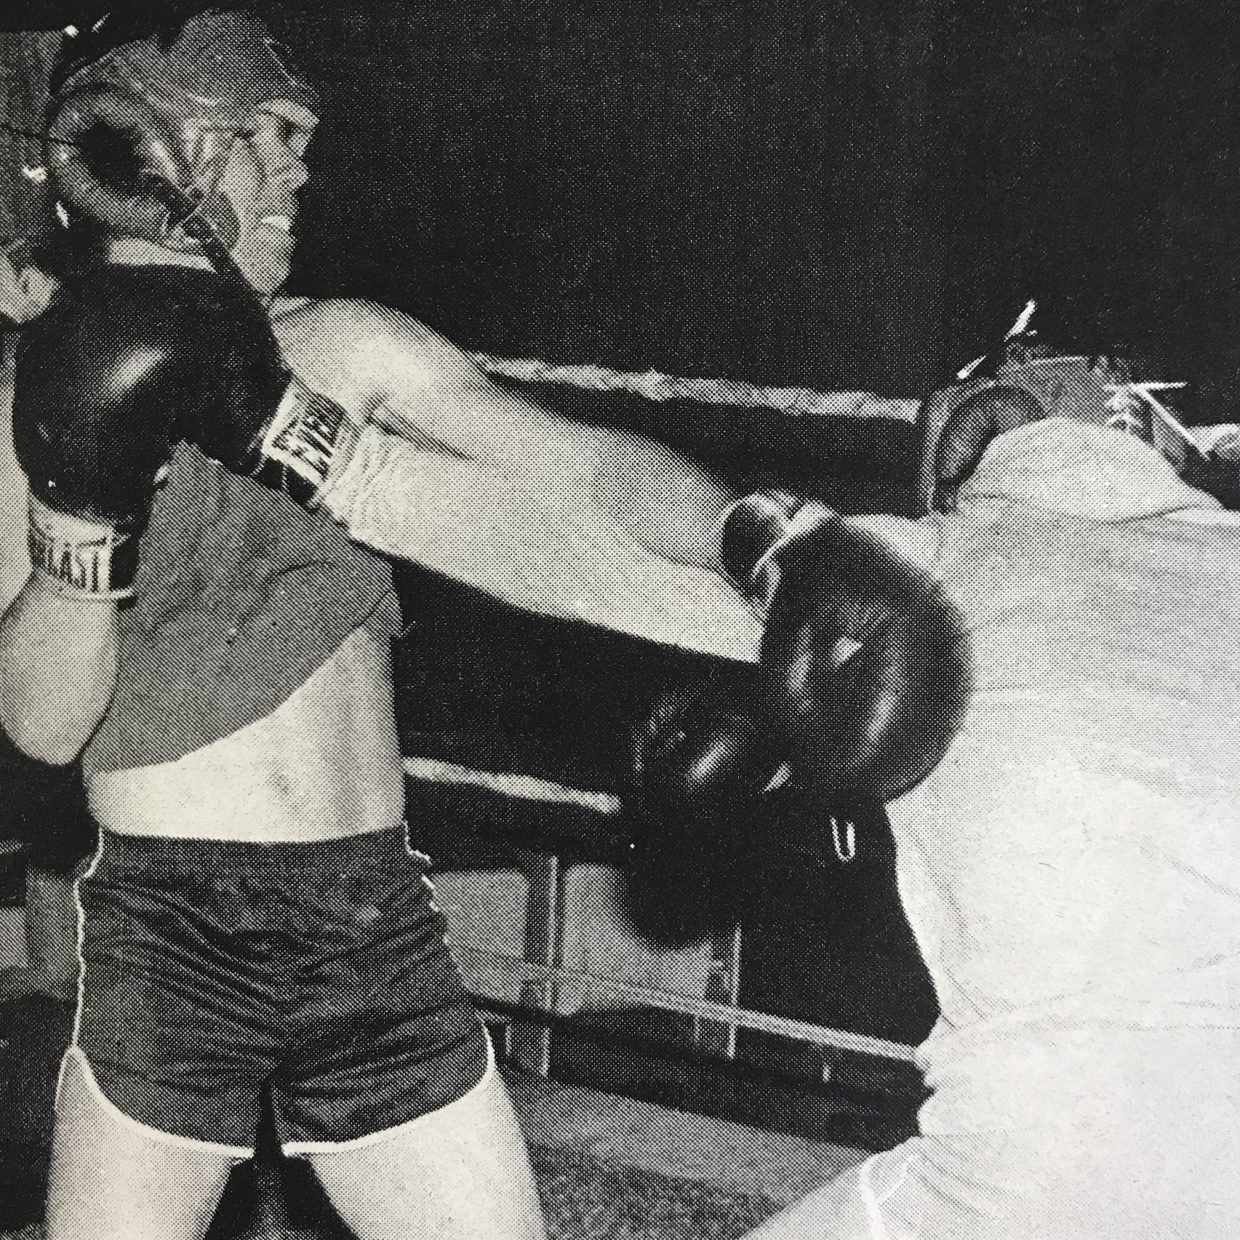 Steve Hunter, left, dodges a straight left hand thrown by Sam Neal as the two boxers spar in preparation for Saturday's boxing matches at the El Grande Theatre in Granby. The two Granby fighters have put in a lot of training time in hopes of winning their bout and a shot at the $250 grand prize.